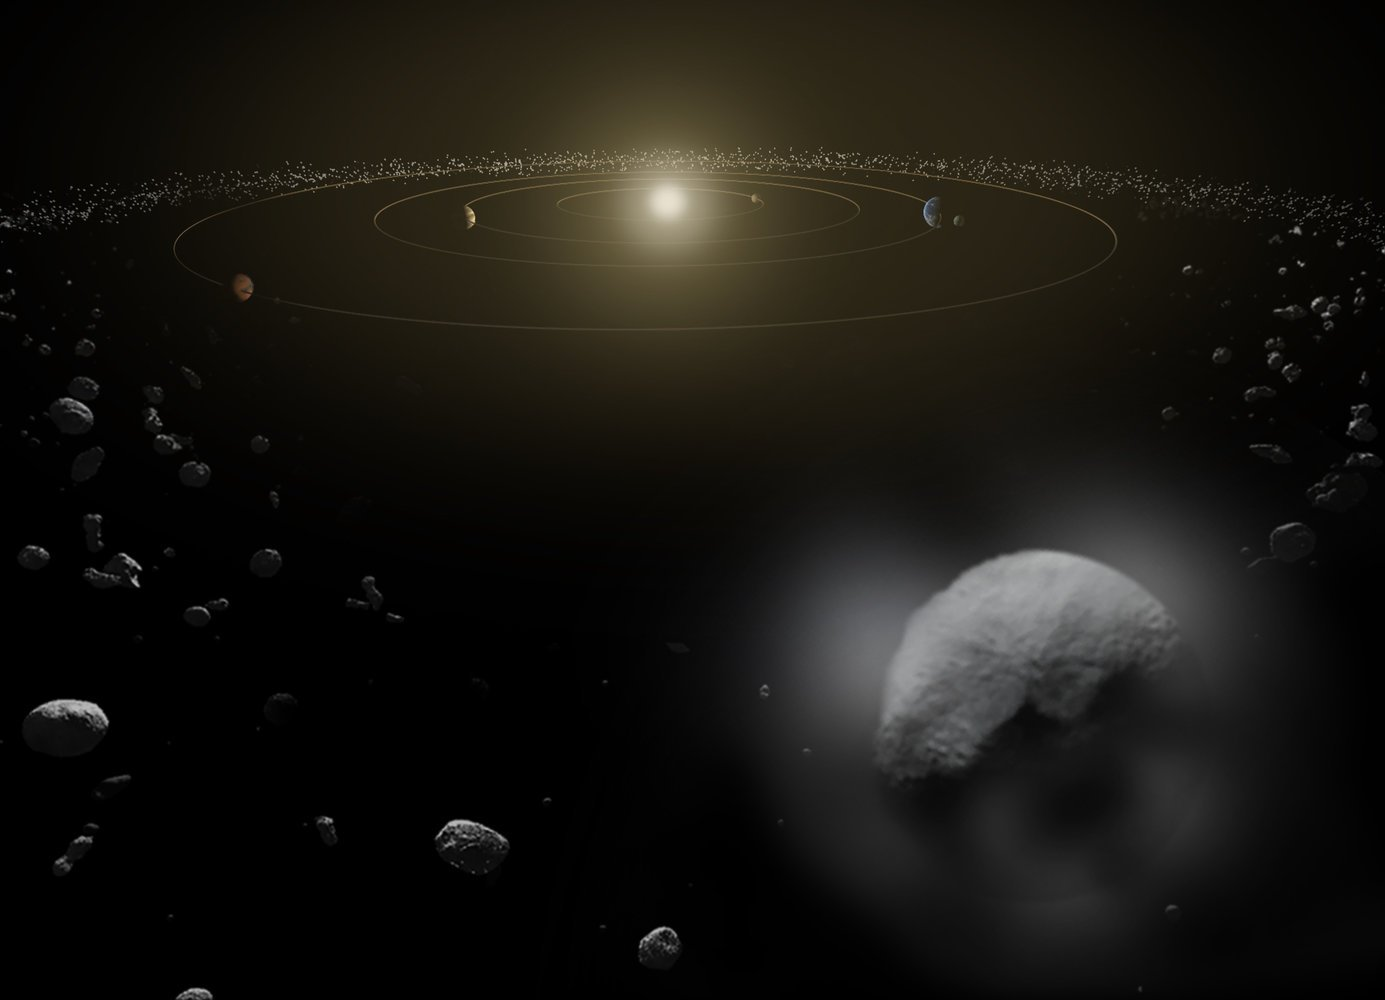 The Asteroid Belt May Be a 'Treasure Trove' of Planetary Building Blocks https://t.co/Q8aVxUGKn3 https://t.co/Kto09OyKmo